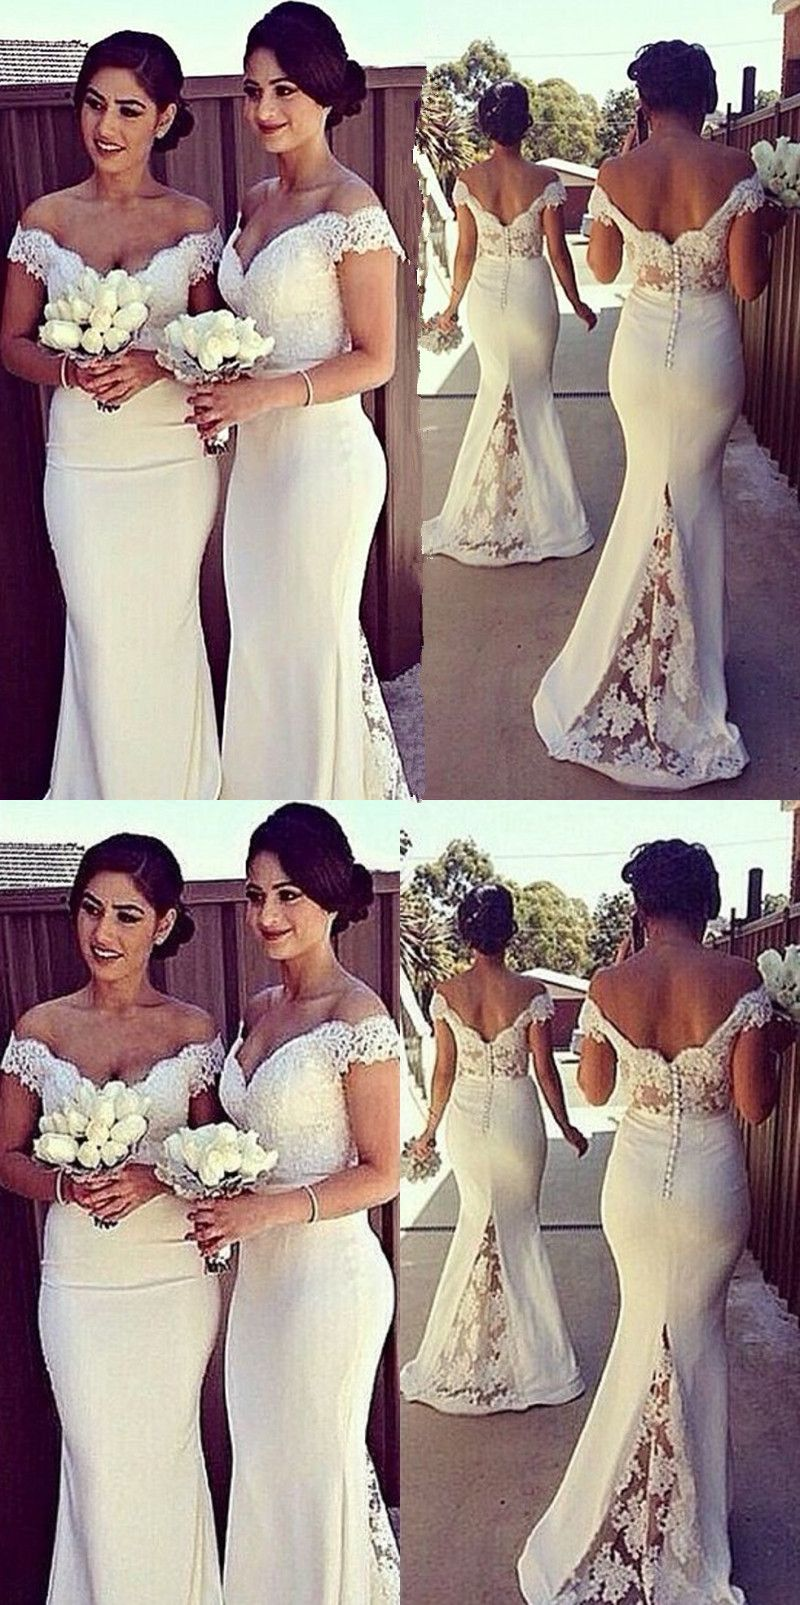 Honorable White Off The Shoulder Floor Length With Lace Bridesmaid Dress Mermaid Bridesmaid Dresses White Bridesmaid Dresses Lace Bridesmaid Dresses [ 1605 x 800 Pixel ]